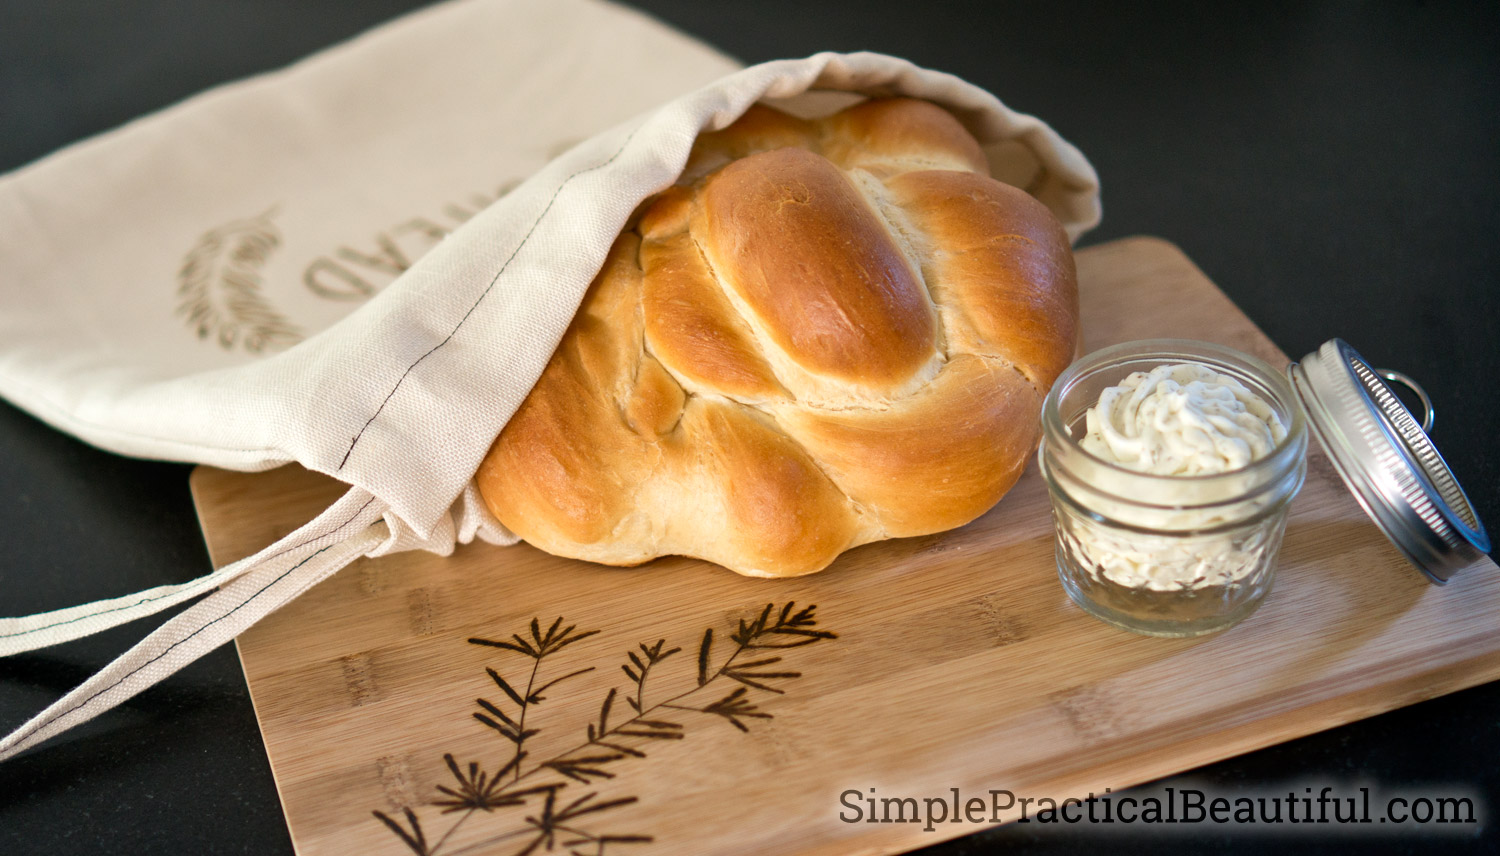 Diy Bread Set Foodie Gift Simple Practical Beautiful